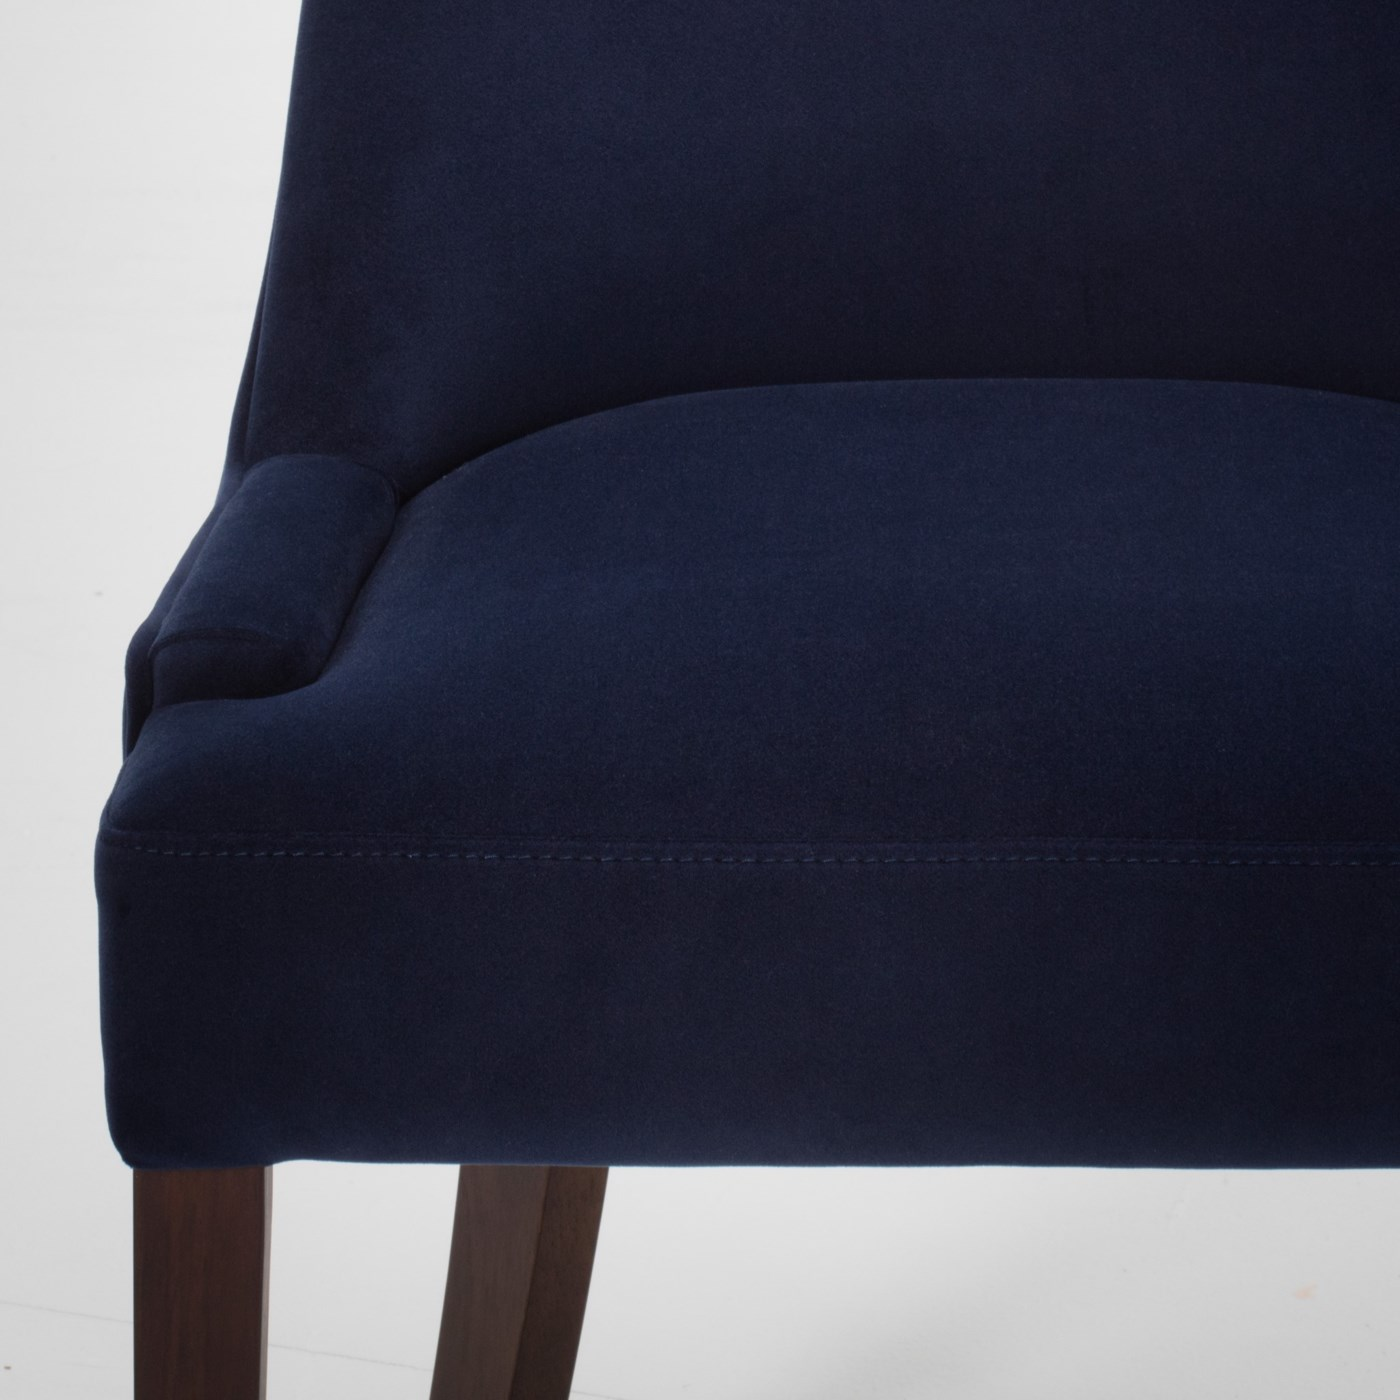 Dewbury Dining Chair - Jade Blue